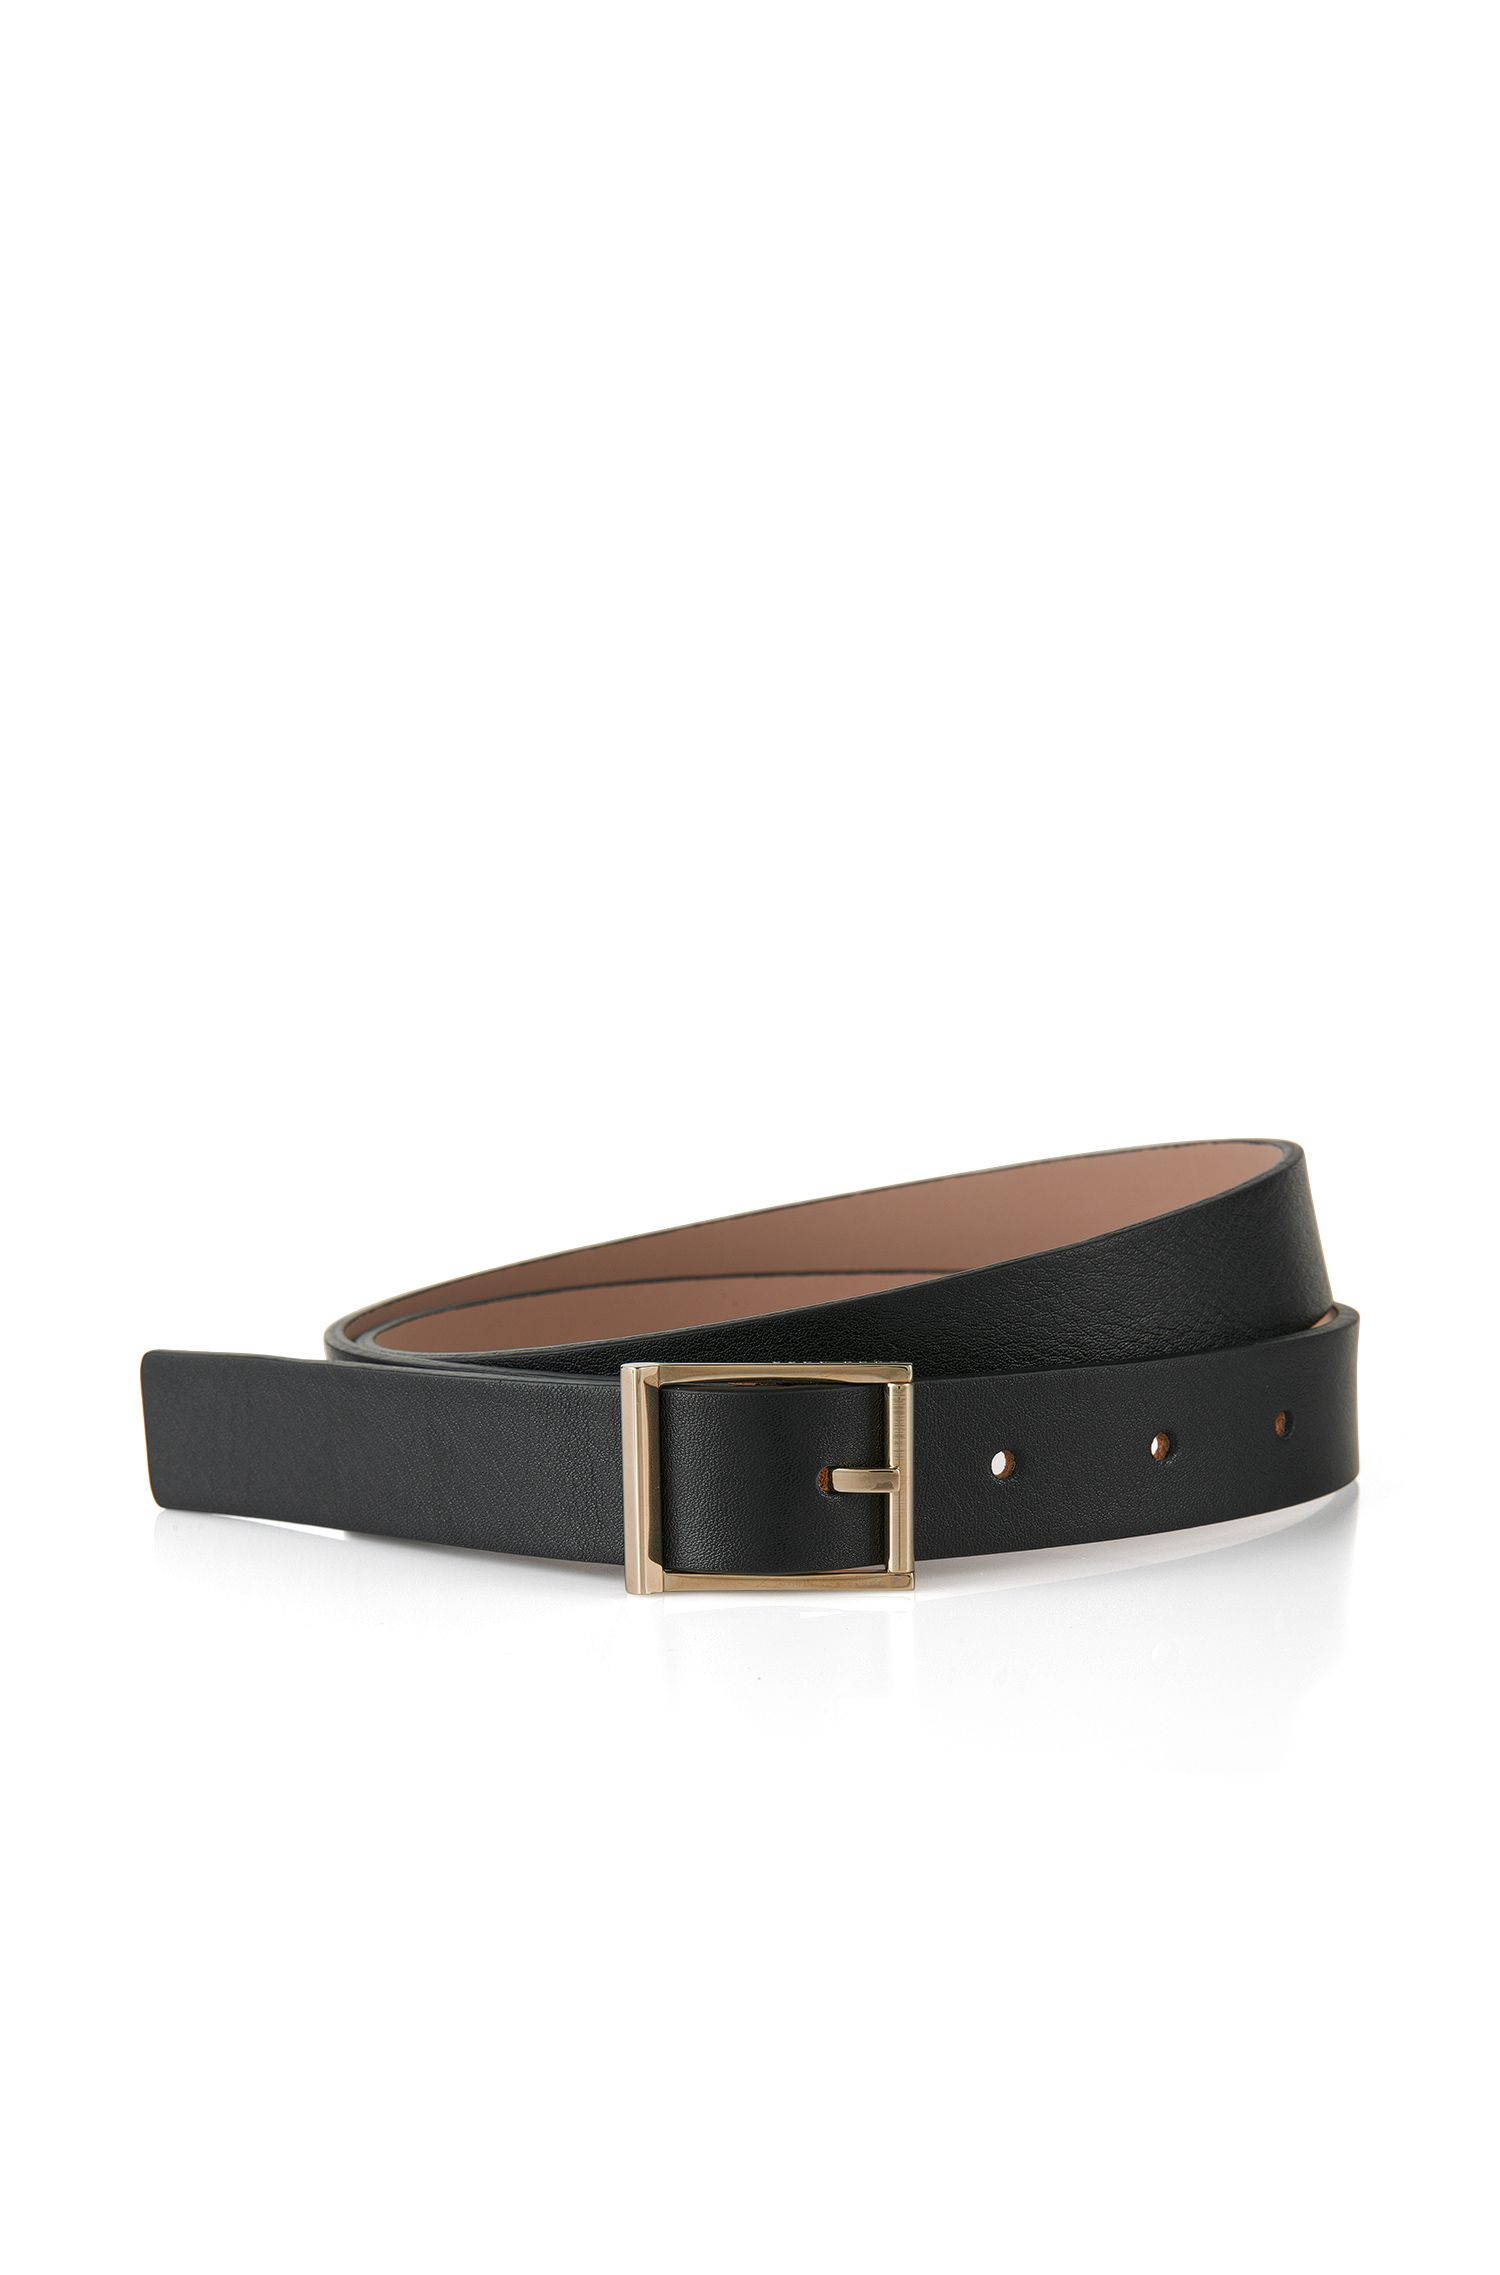 'Brier' | Italian Leather Belt by BOSS